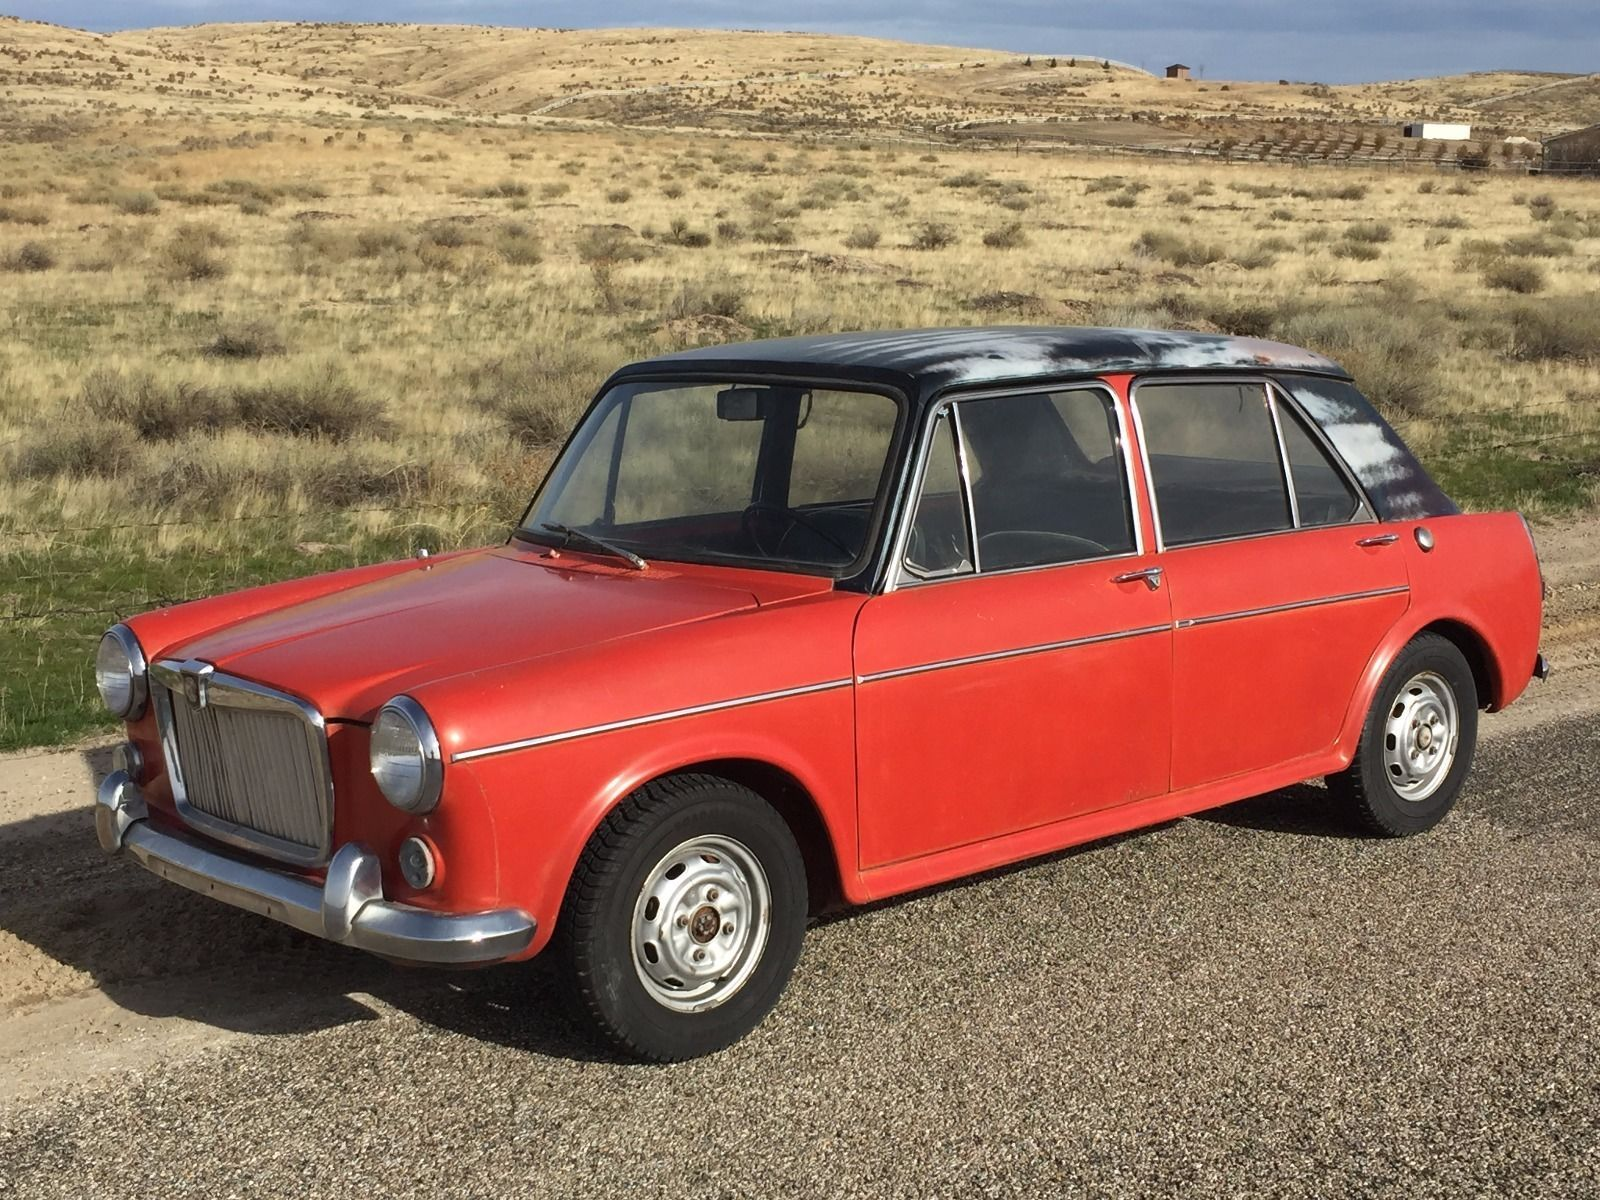 1967 MG 1100 - Eagle, Idaho #ForSale #eBay | Auctions and For-Sale ...